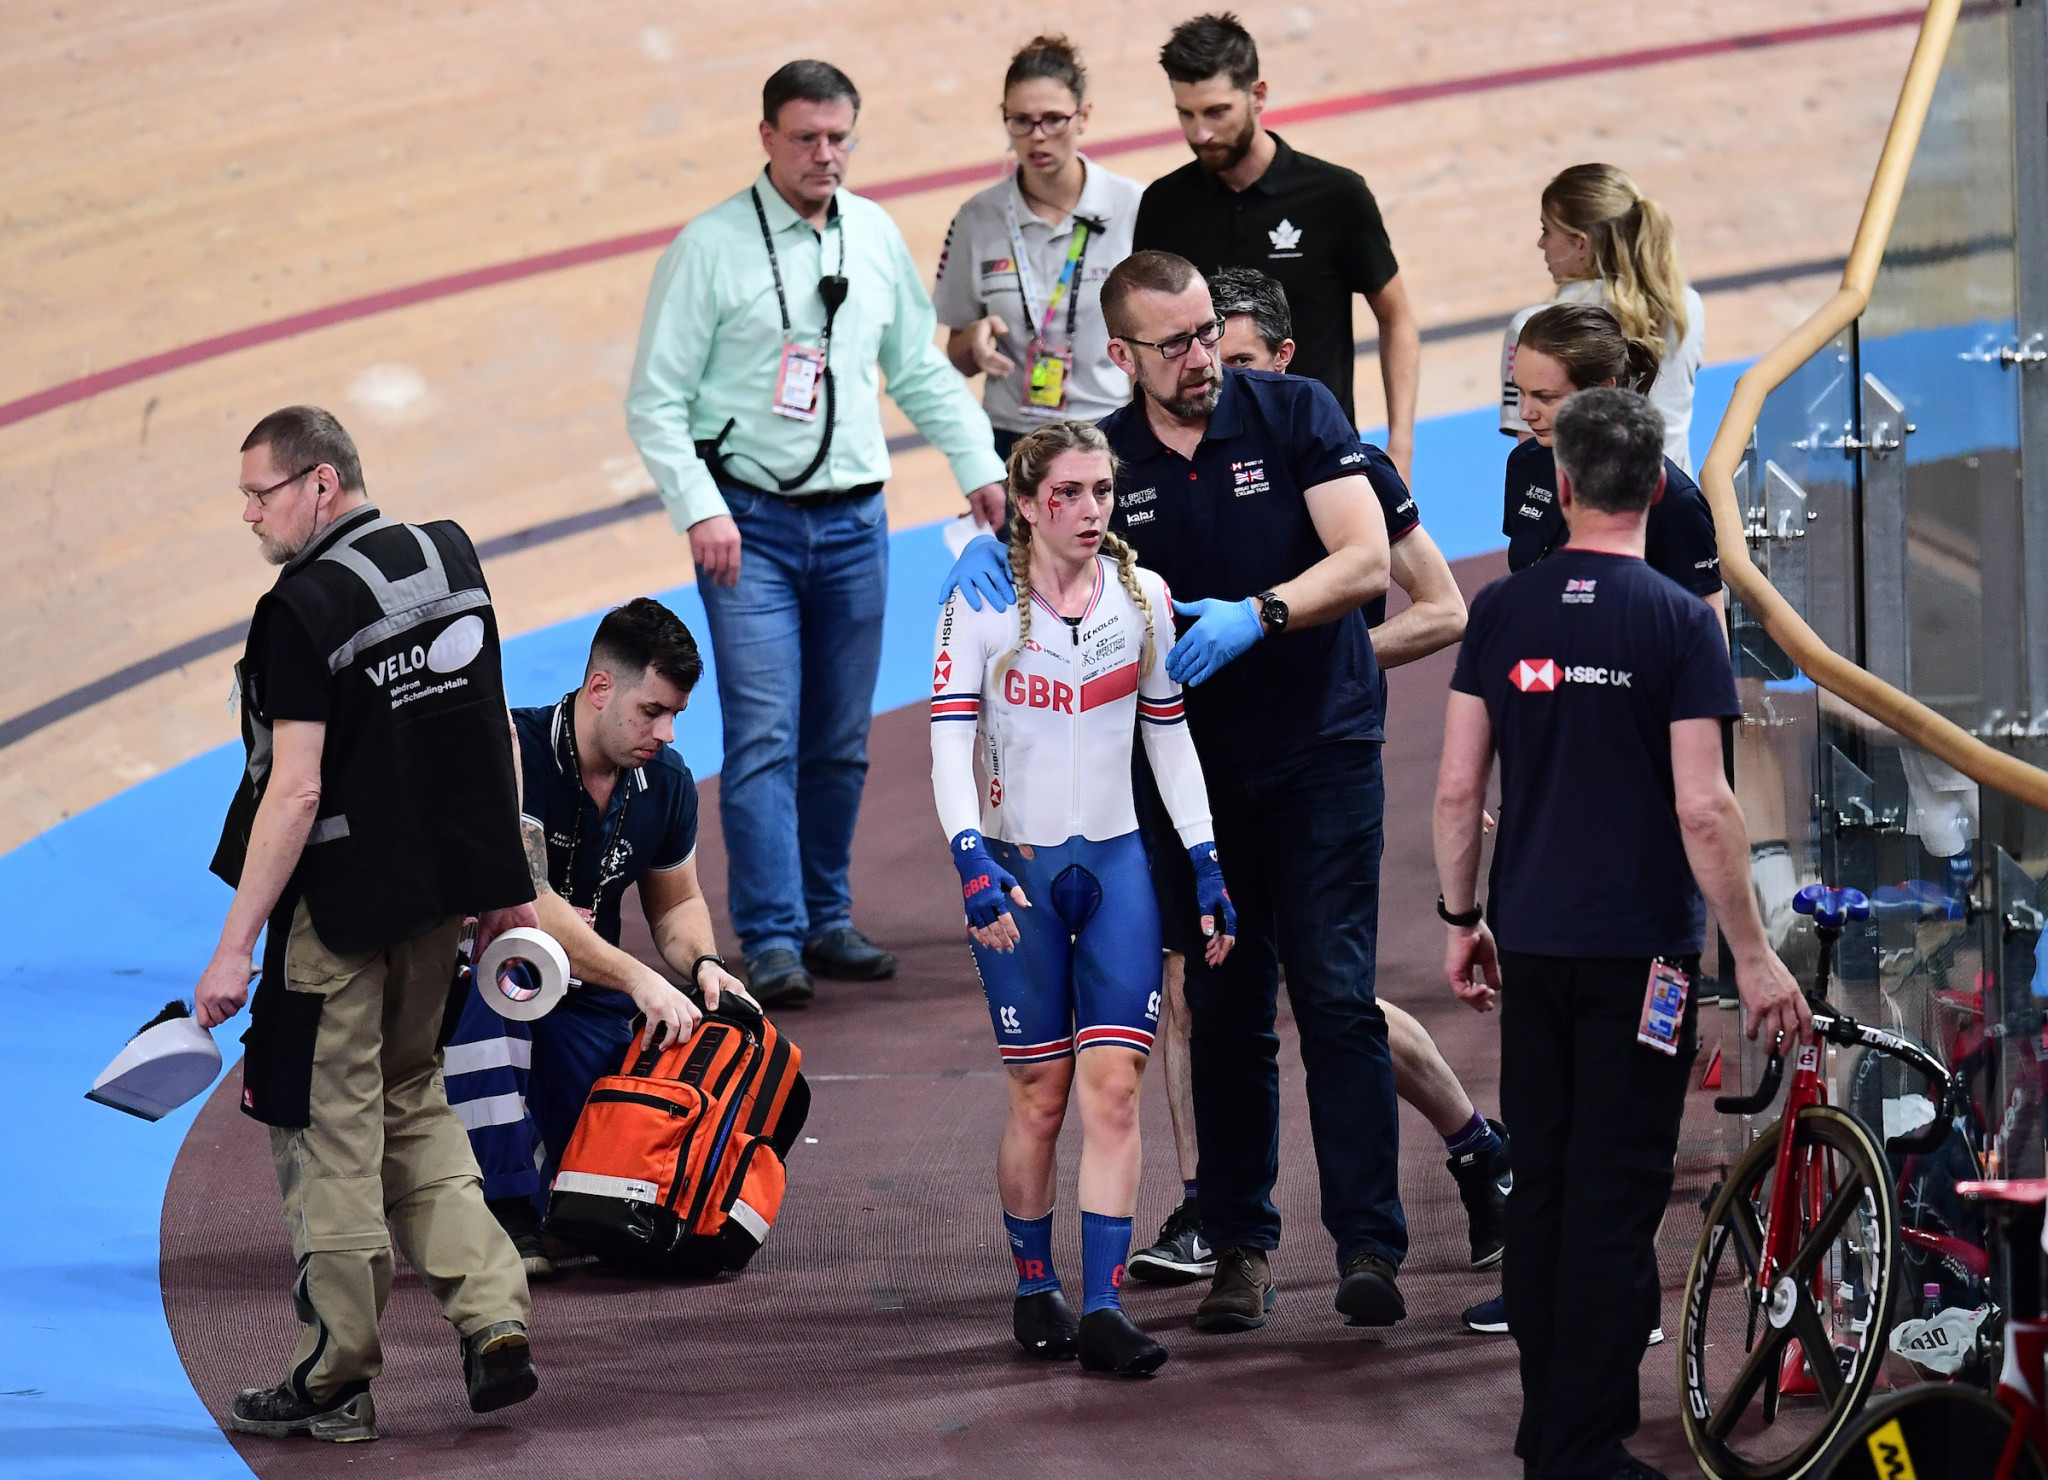 Embattled British Cycling names Jones chief medical officer